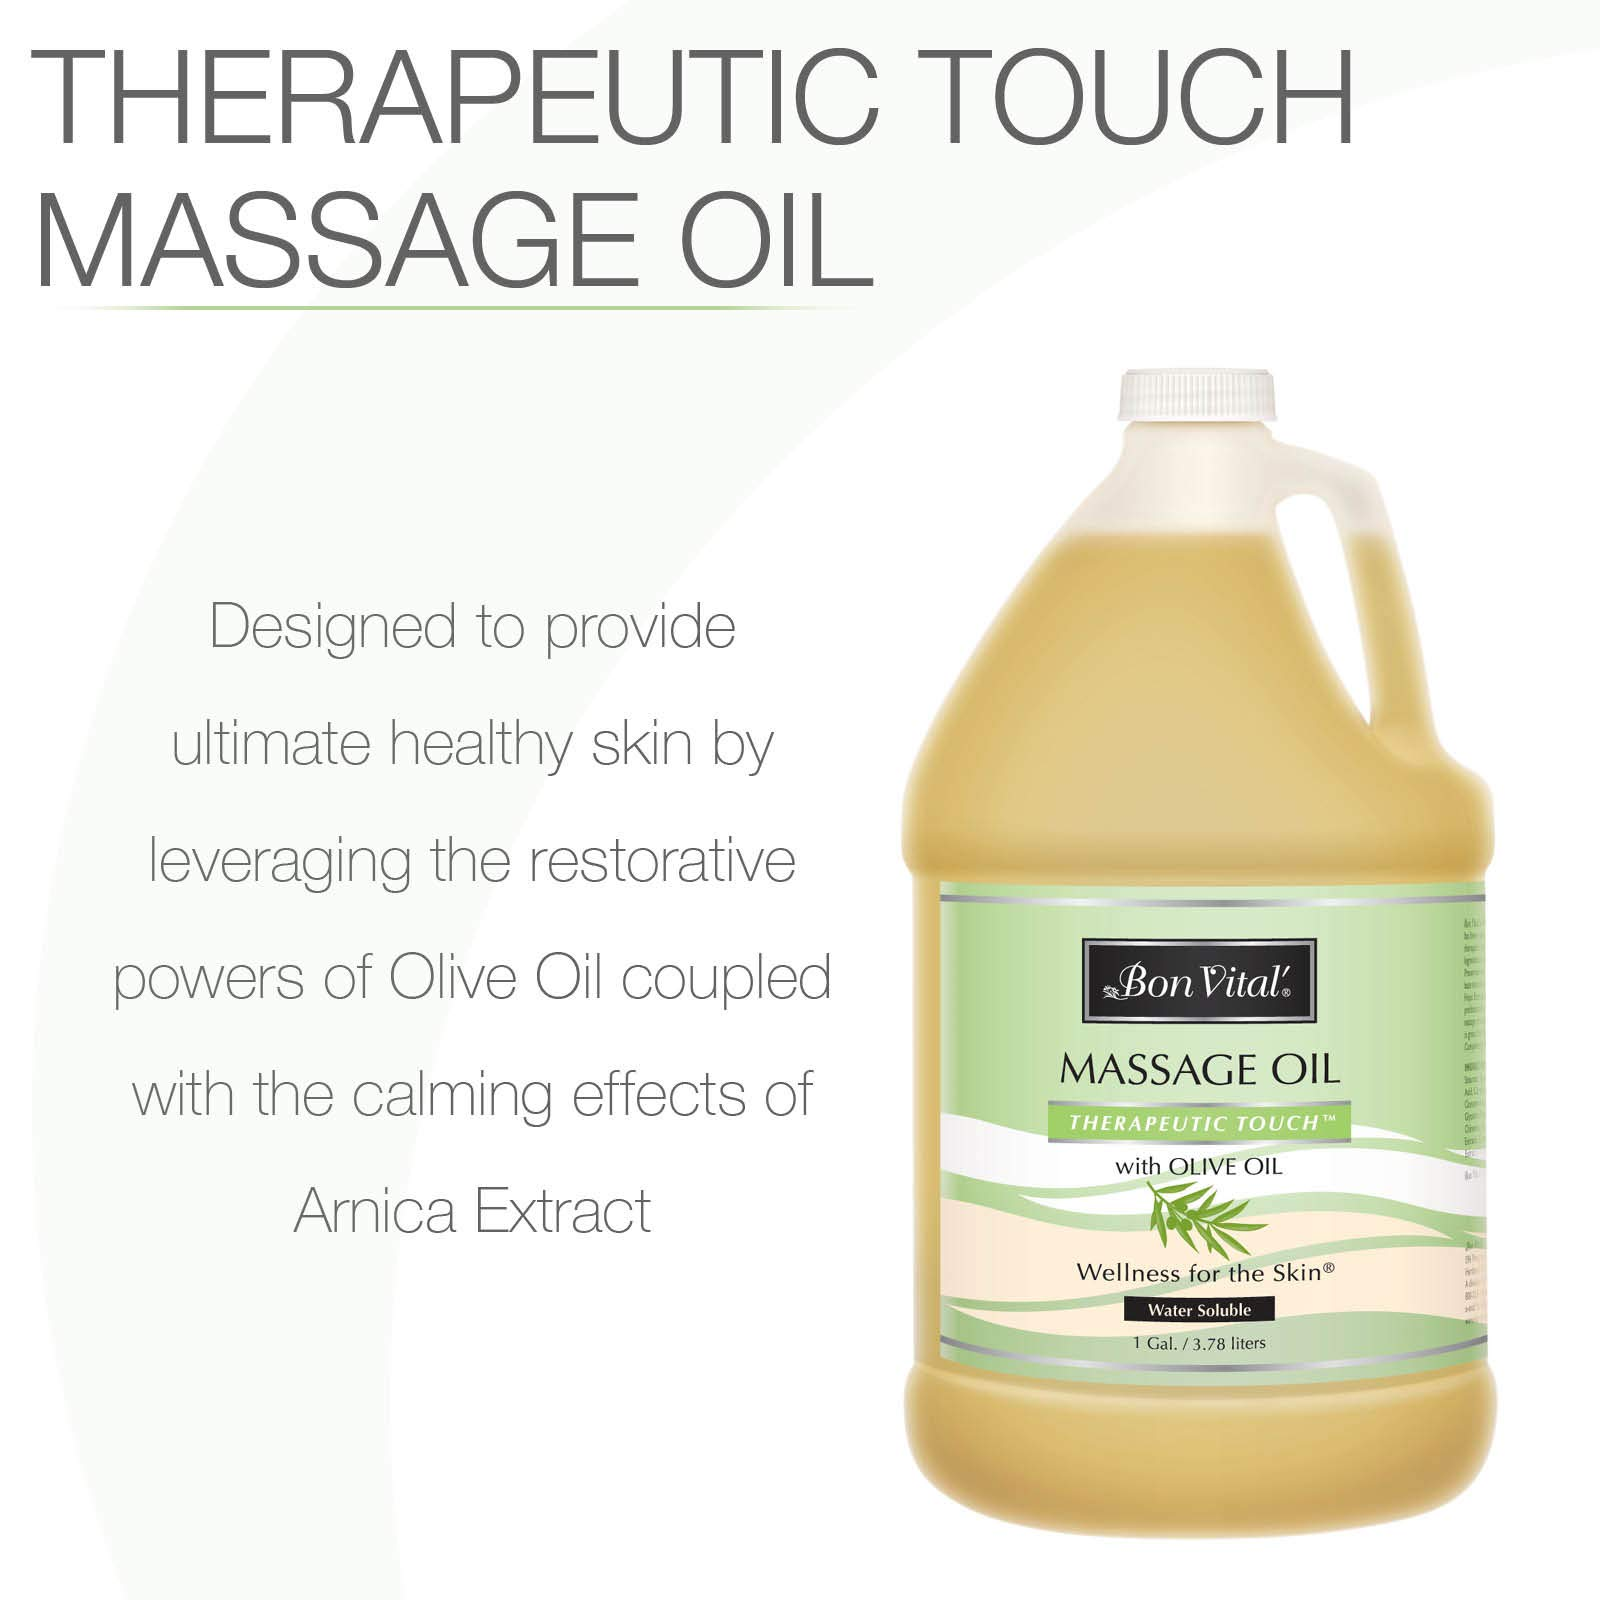 Bon Vital' Therapeutic Touch Massage Oil Made with Olive Oil to Repair Dry Skin & Soothe Sore Muscles, Lightweight Oil Perfect for Any Massage to Hydrate and Nourish Dry, Rough Skin, 1 Gallon Bottle by Bon Vital (Image #2)